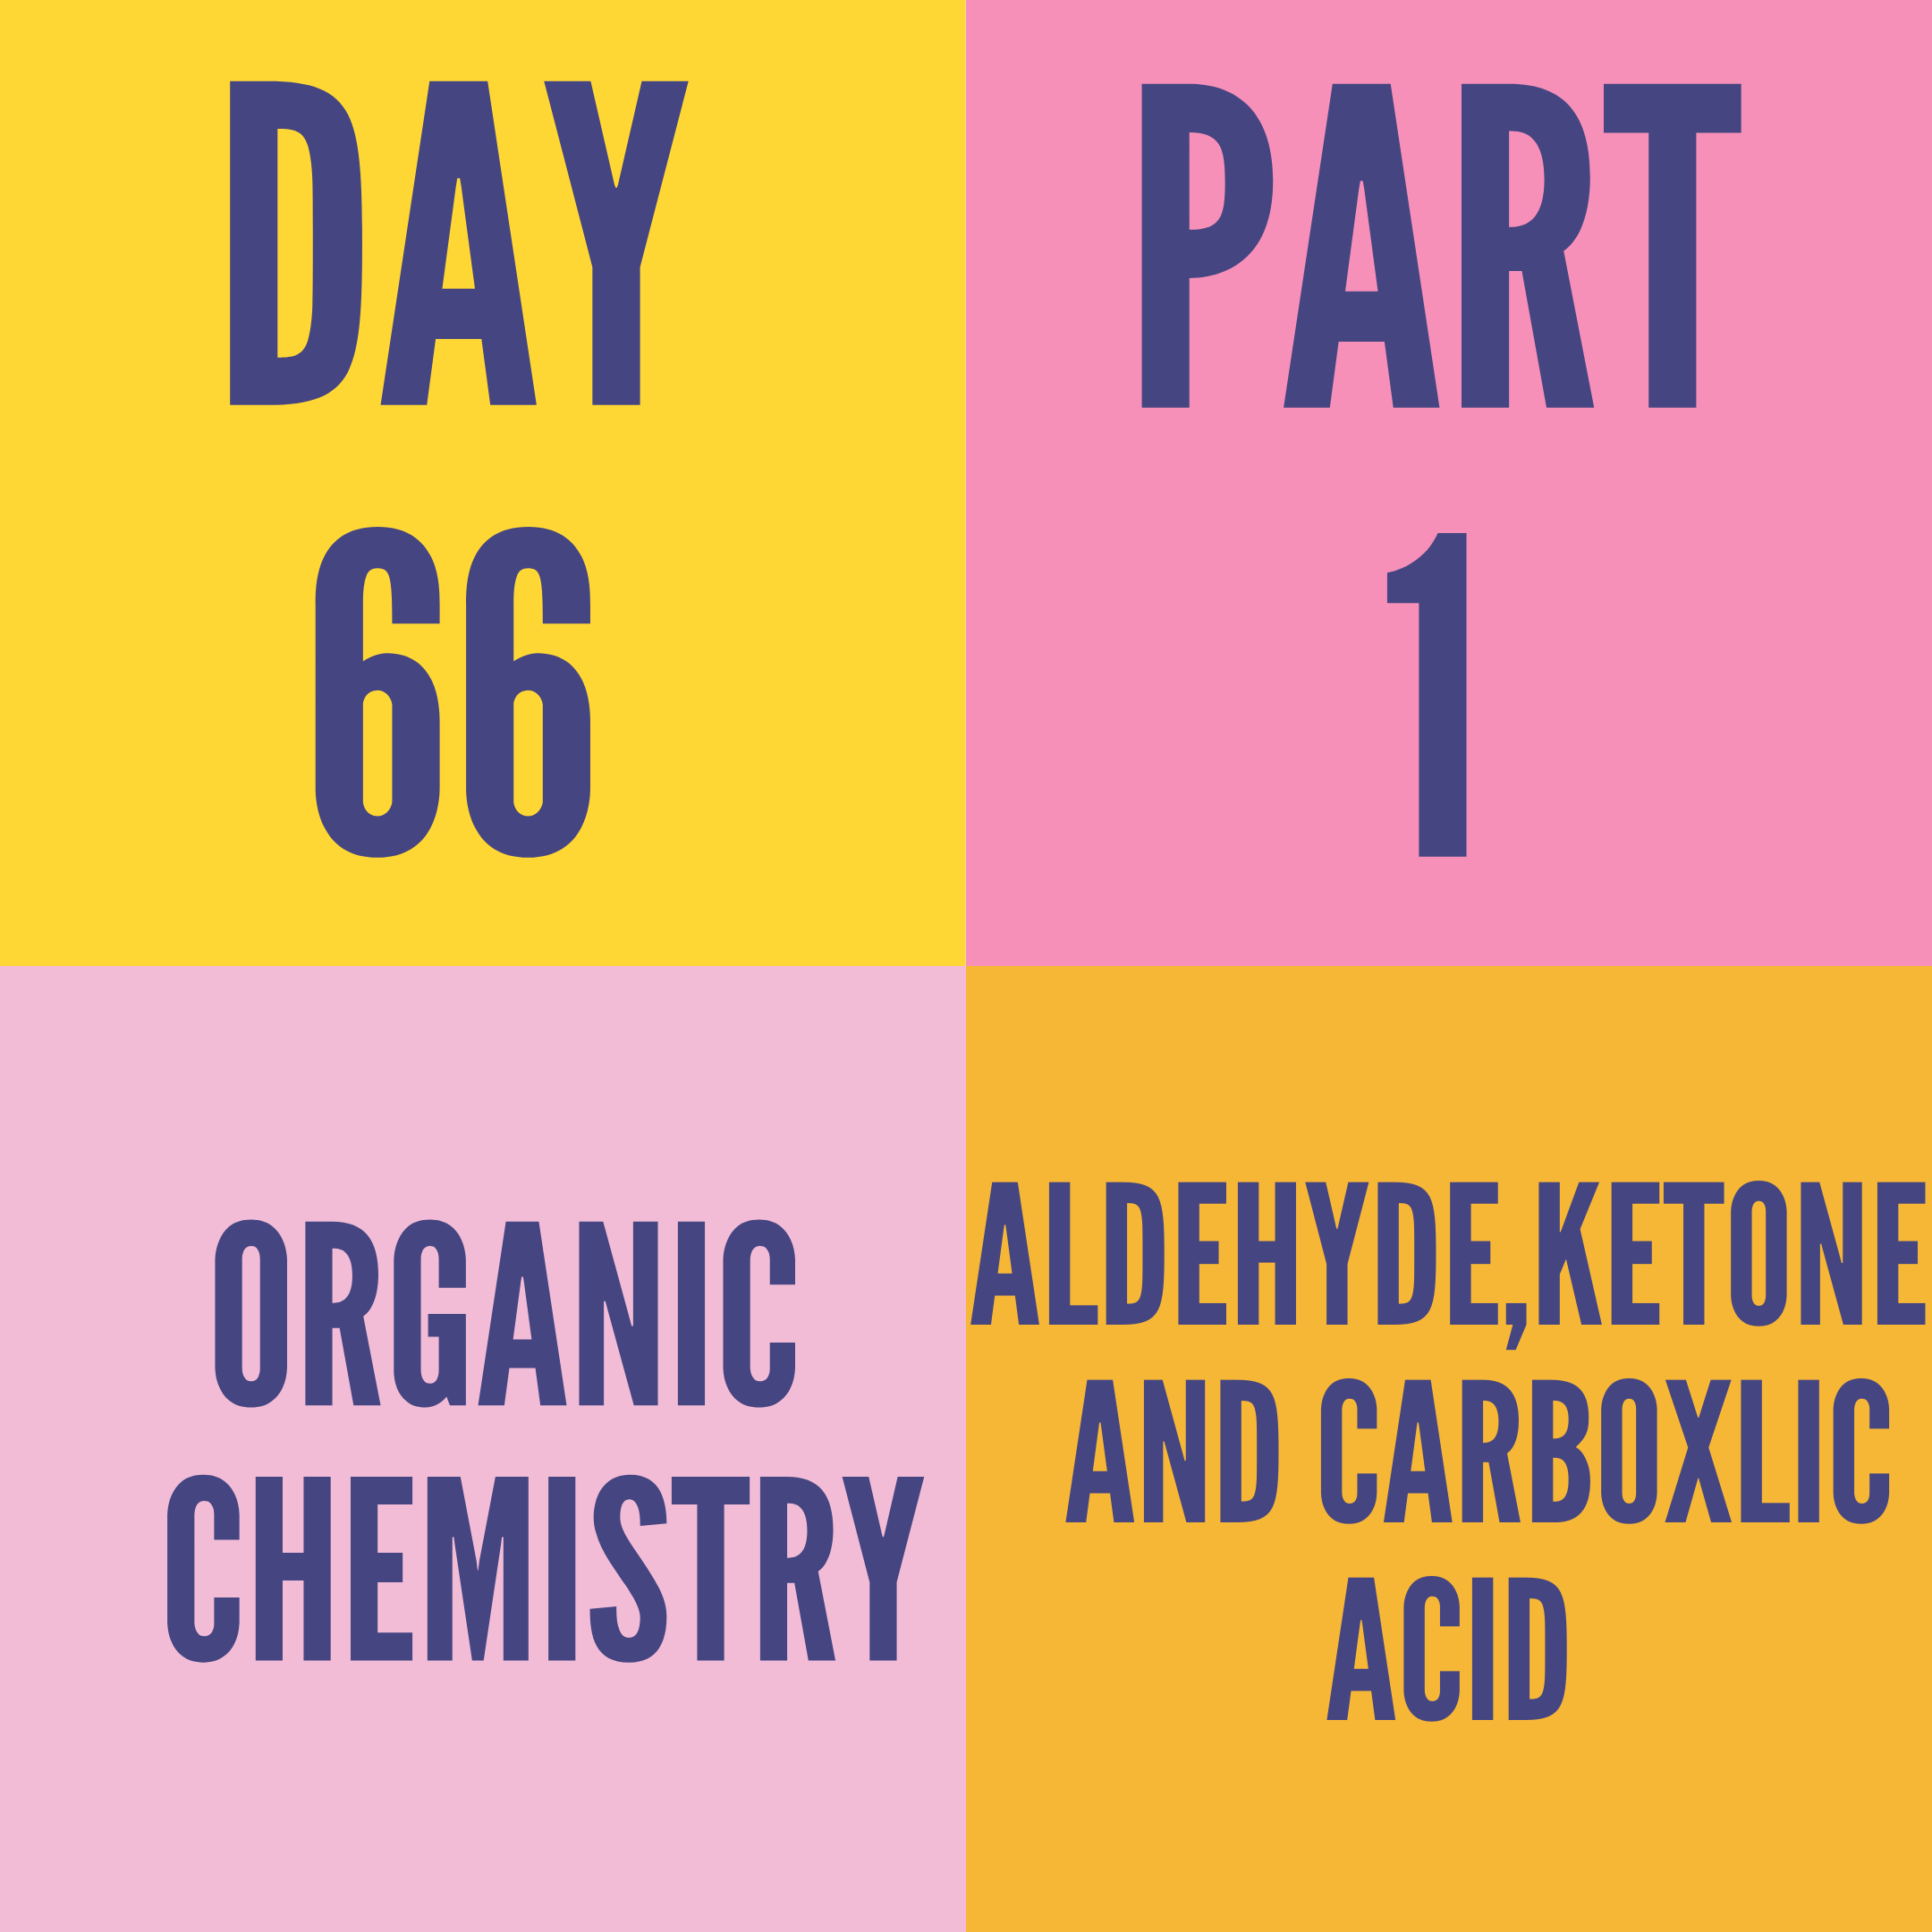 DAY-66 PART-1 ALDEHYDE,KETONE AND CARBOXLIC ACID